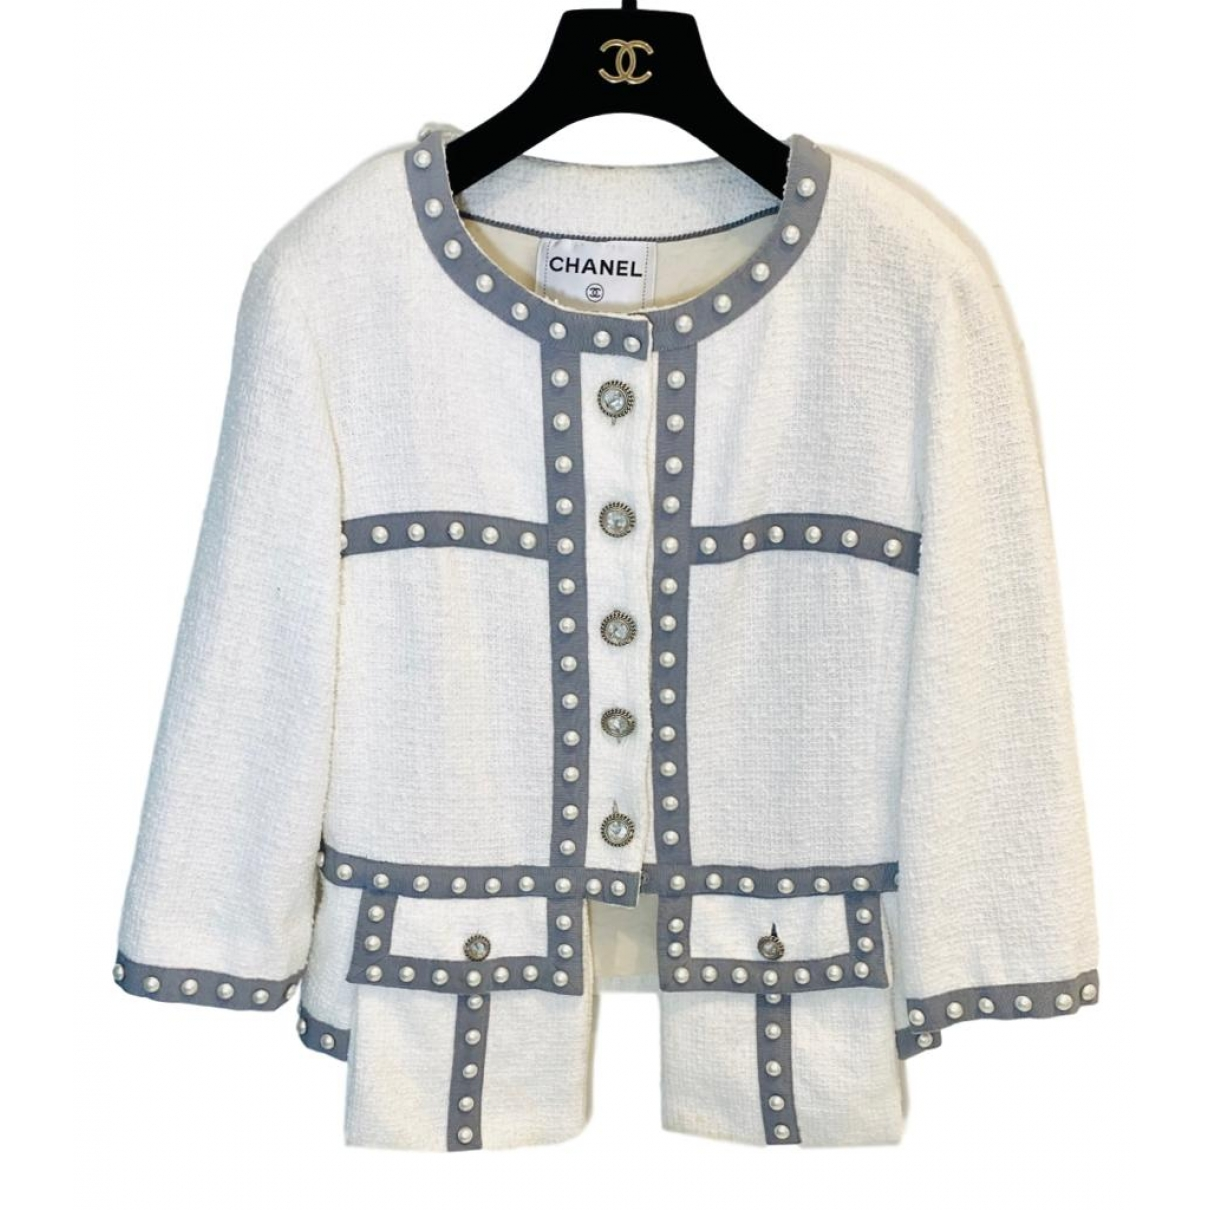 Chanel \N White Cotton jacket for Women 40 FR